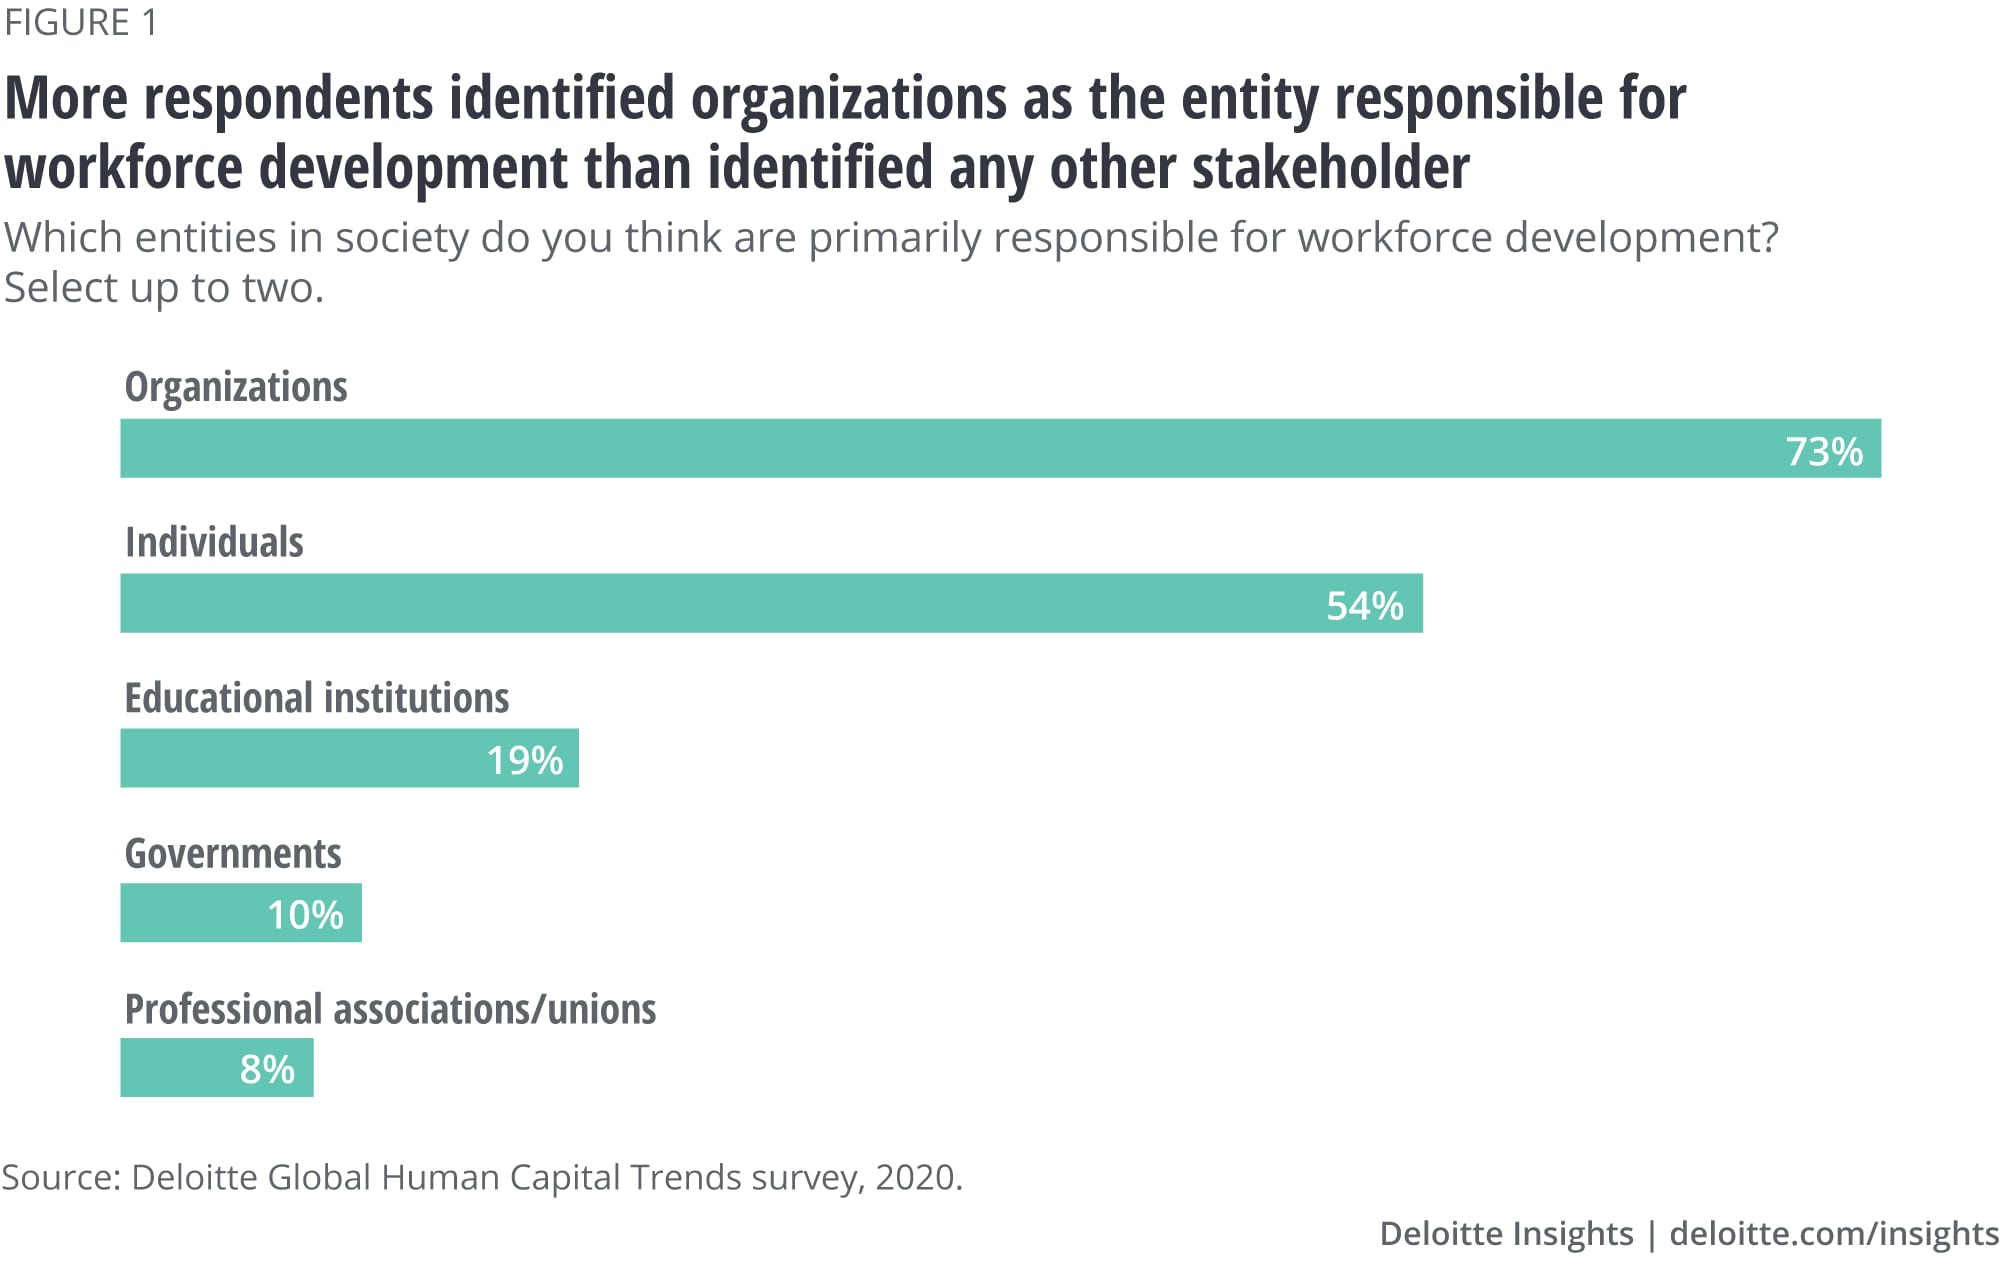 More respondents identified organizations as the entity responsible for workforce development than identified any other stakeholder